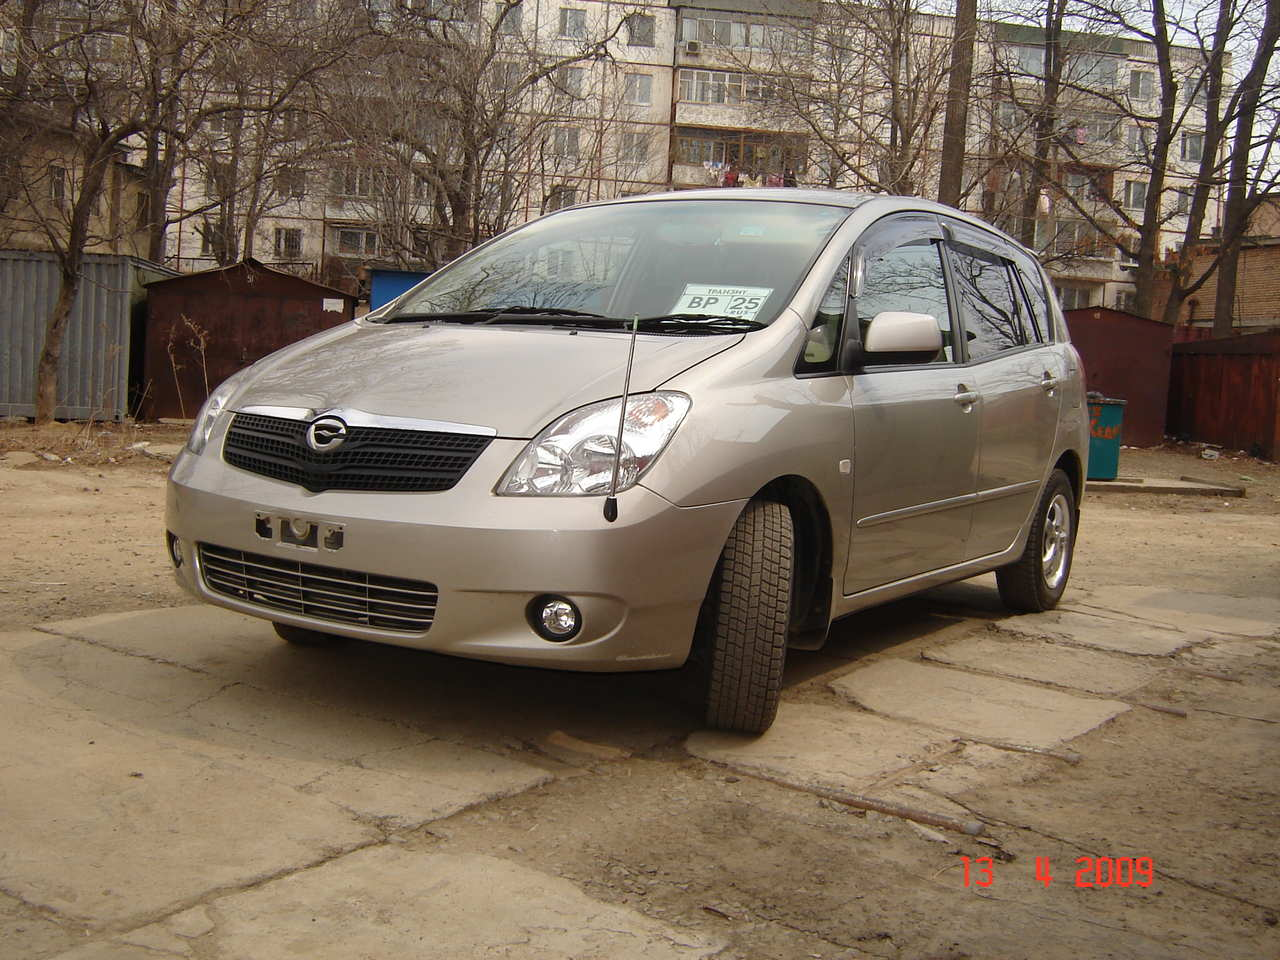 2002 toyota corolla spacio pictures gasoline ff automatic for sale. Black Bedroom Furniture Sets. Home Design Ideas